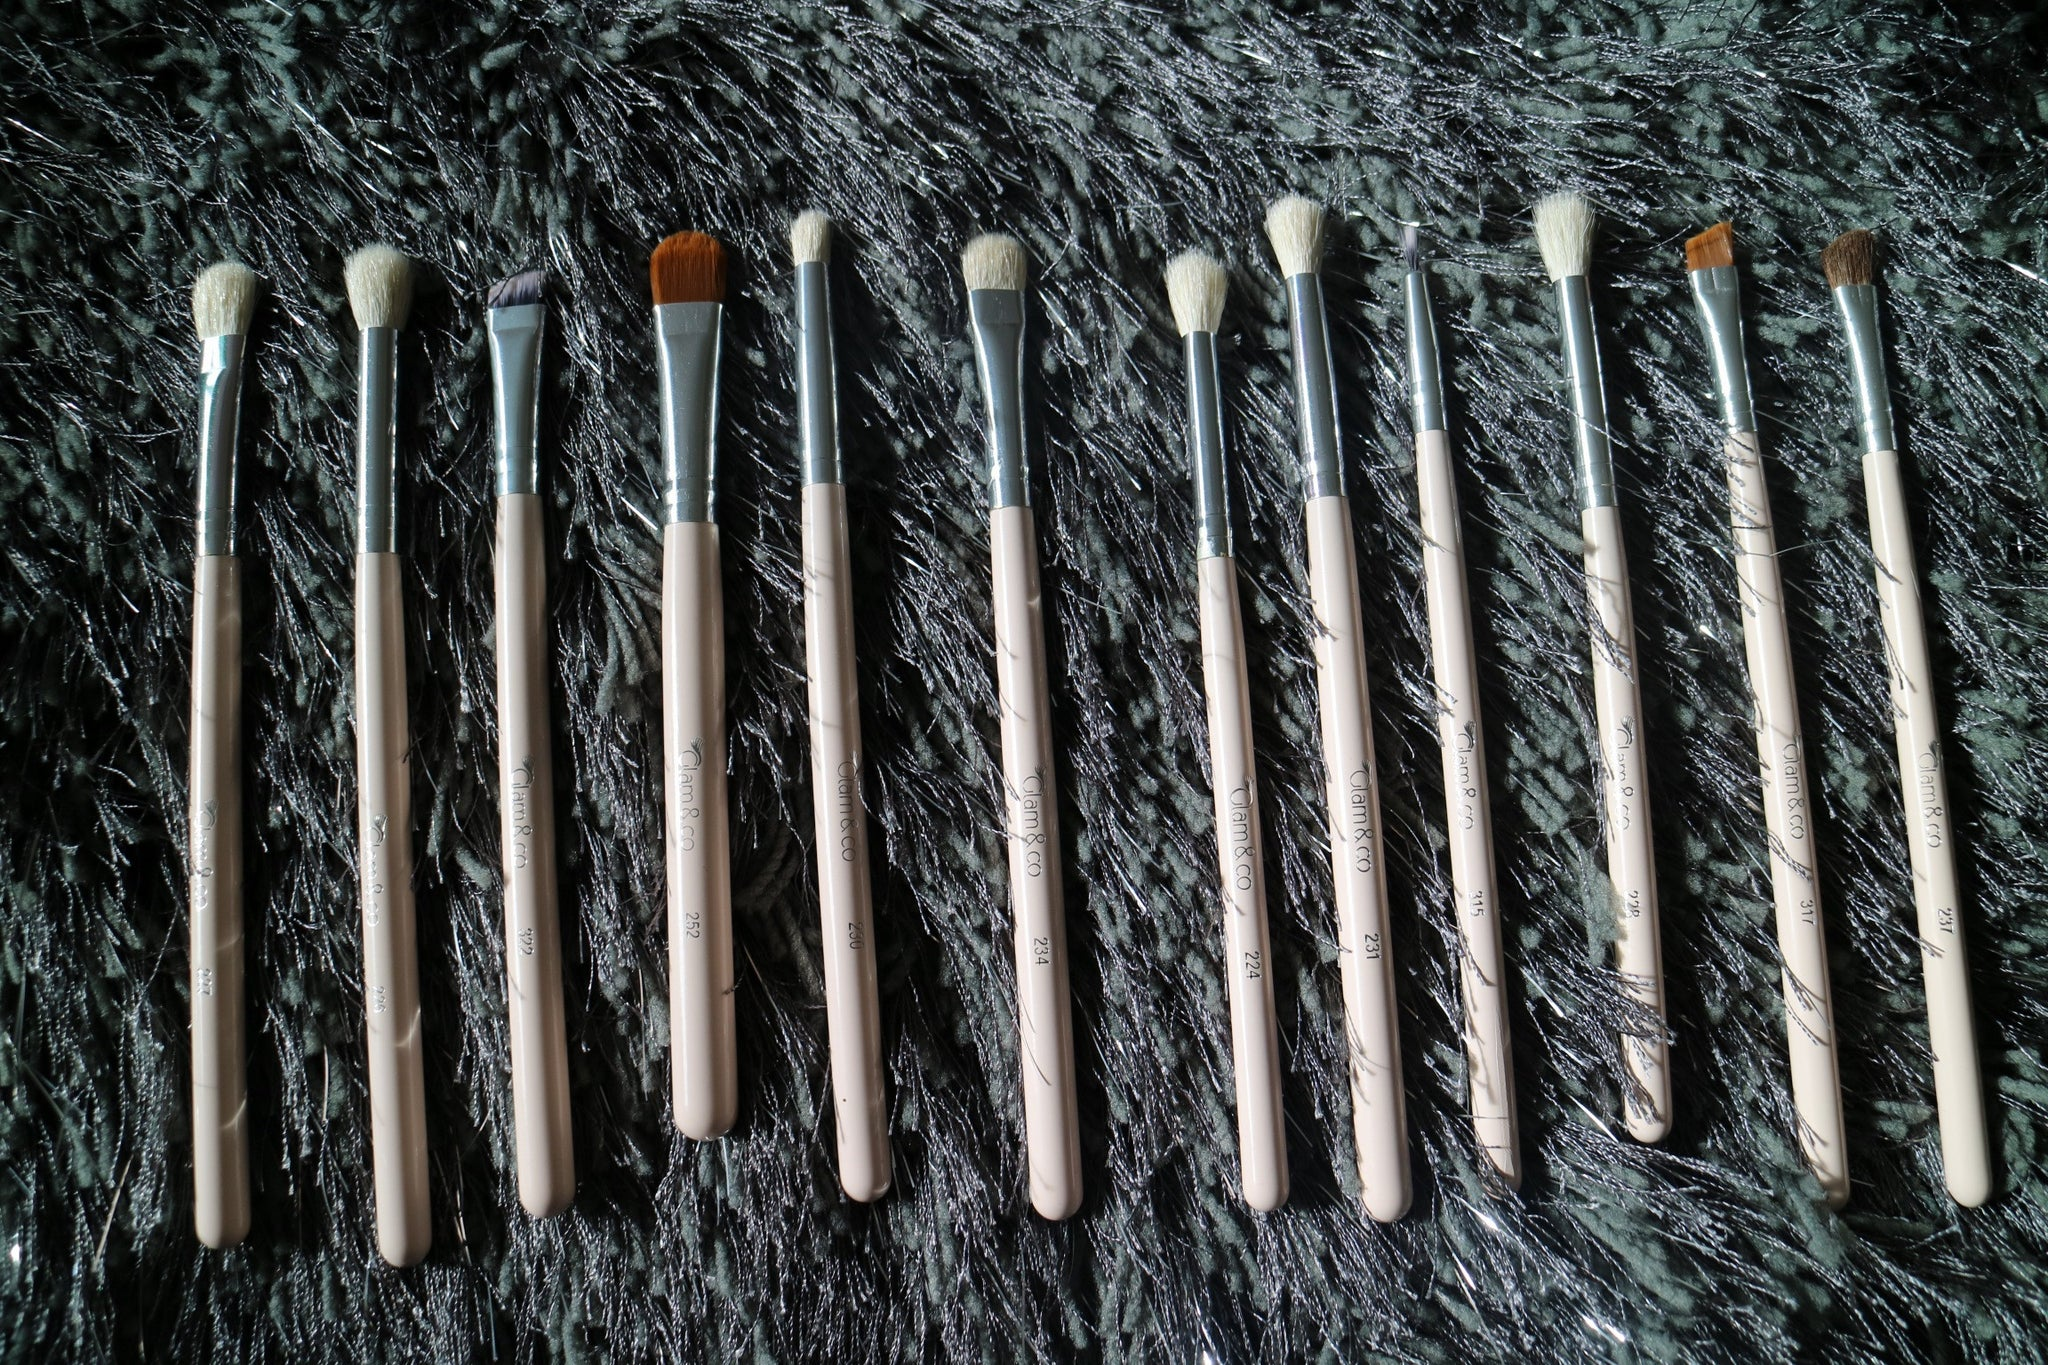 12 PIECE PRO BLEND AND DEFINE BRUSH COLLECTION